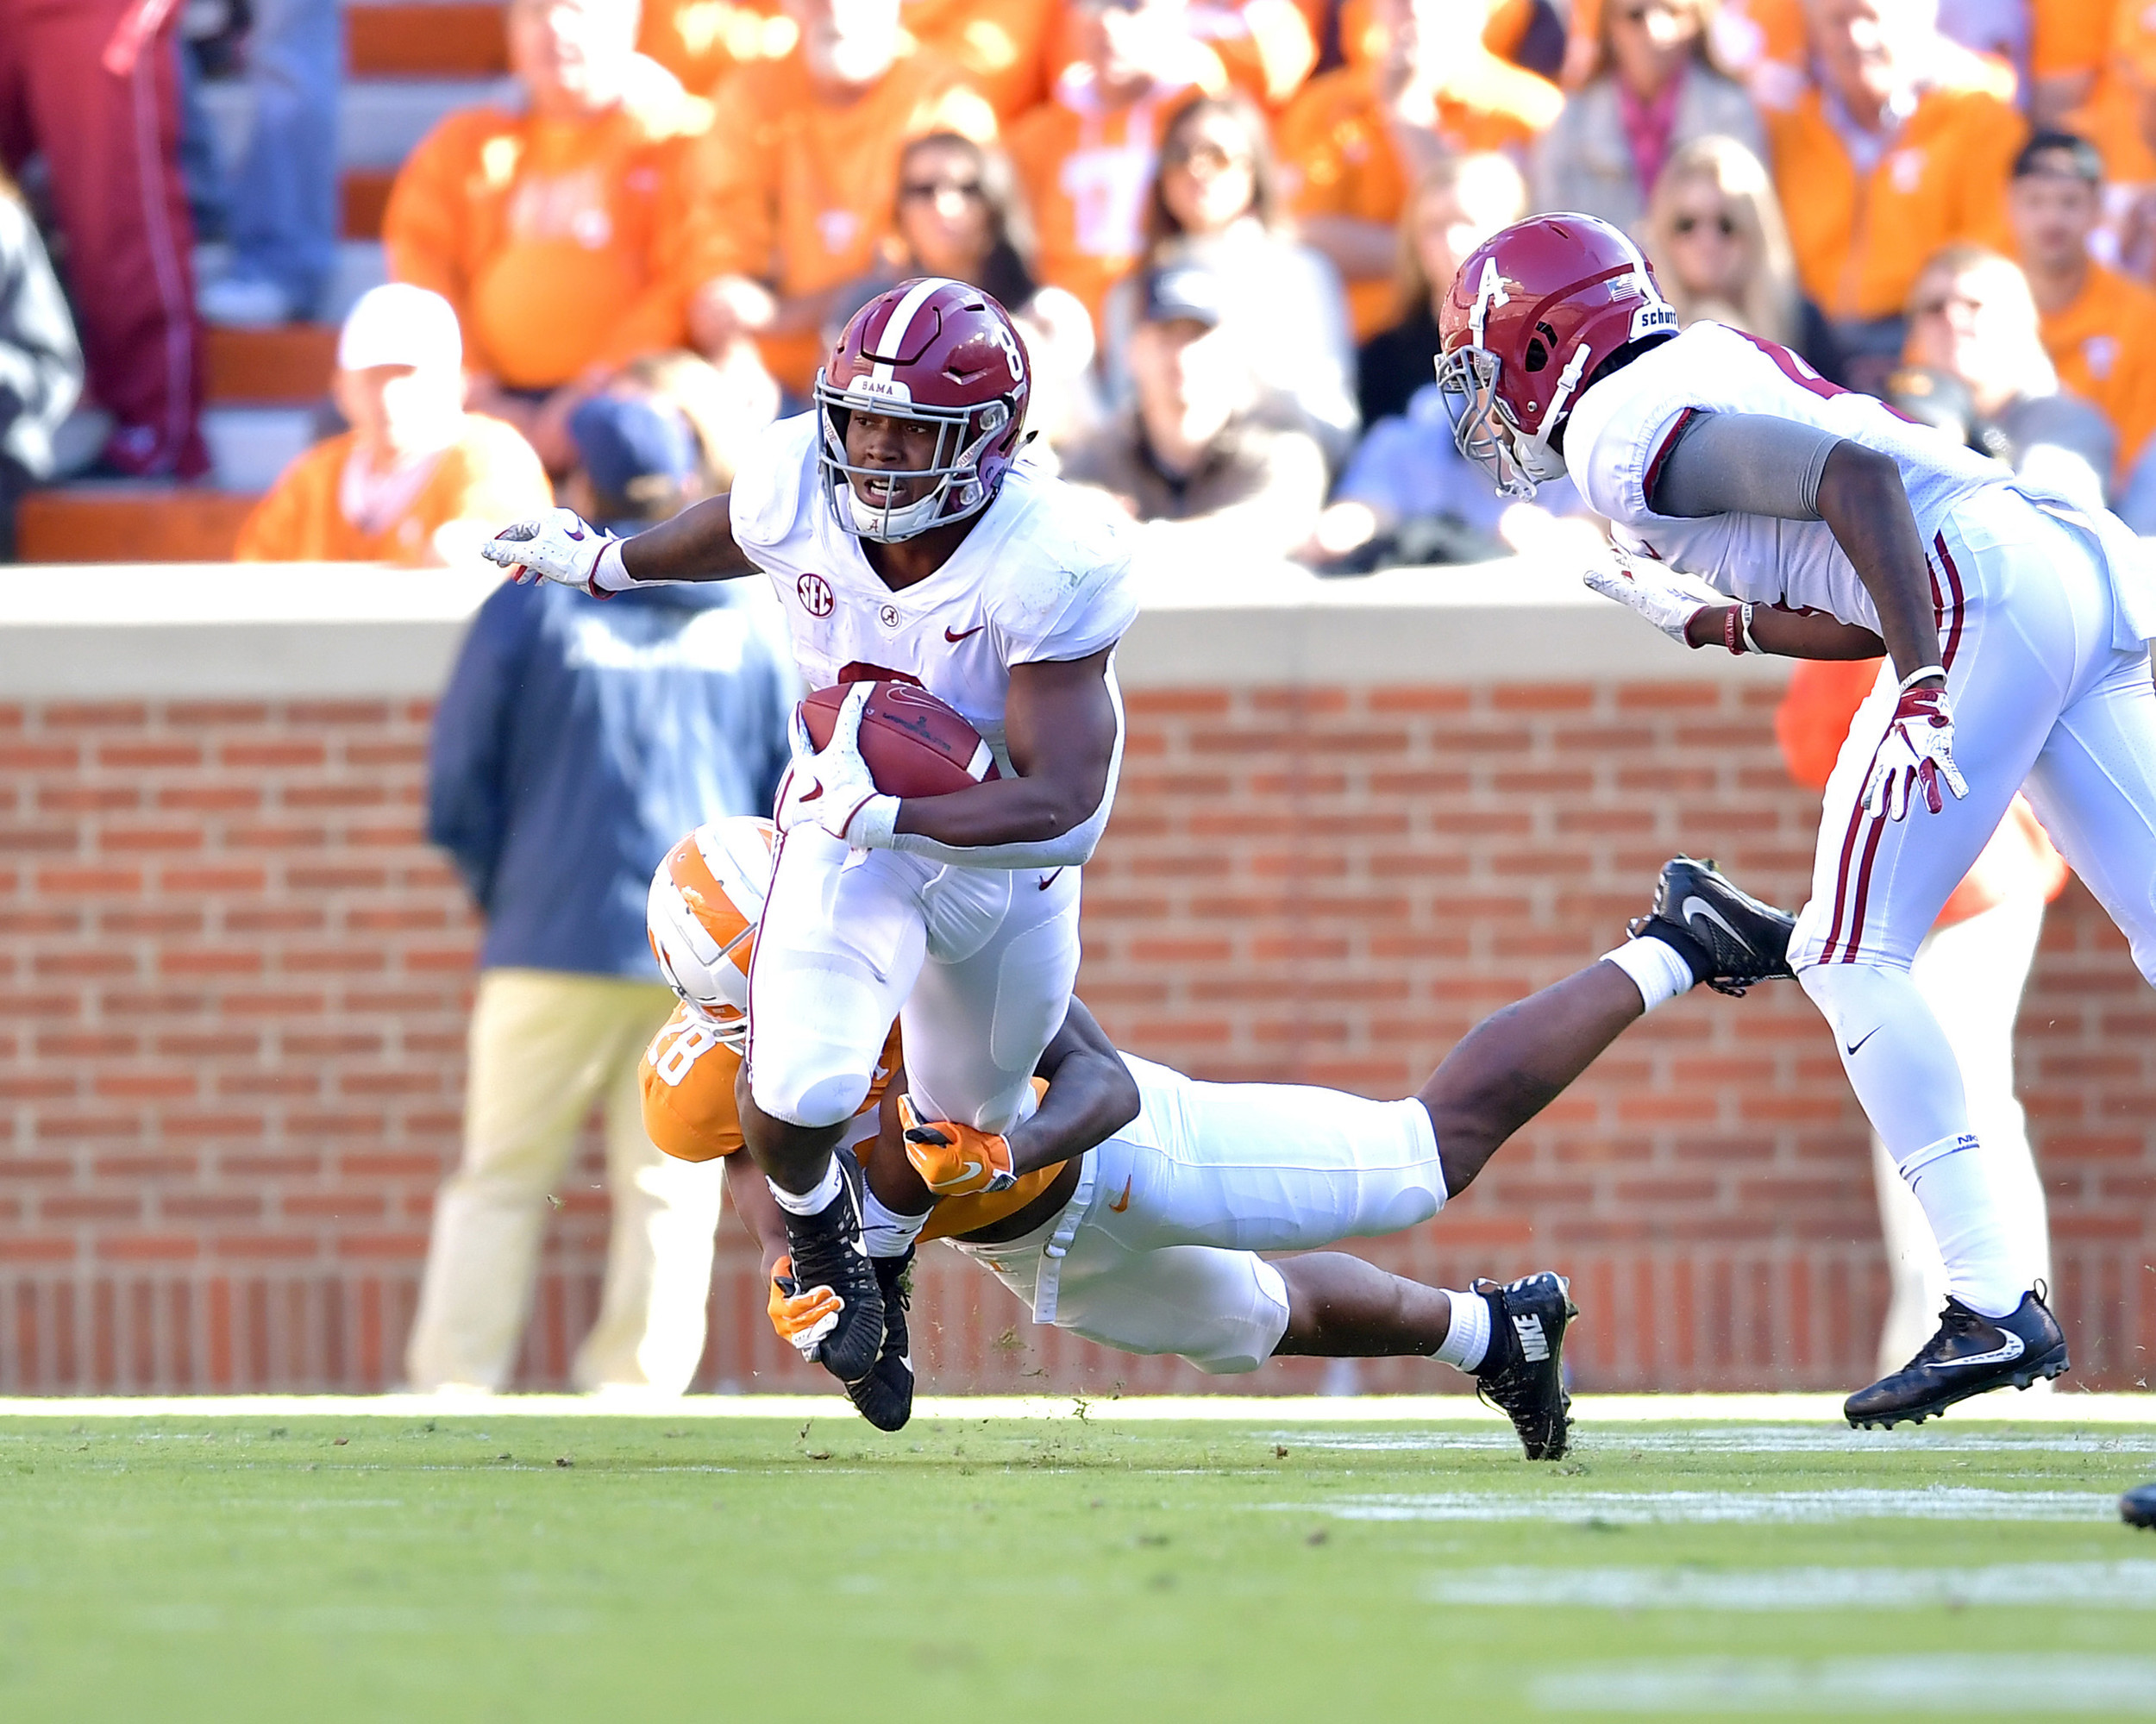 Alabama Crimson Tide running back Josh Jacobs (8) is tackled in the first half of the Alabama at Tennessee NCAA football game on Saturday, Oct. 20, 2018, at Neyland Stadium in Knoxville. Tenn. Alabama wins 58-21. (Photo by Lee Walls)